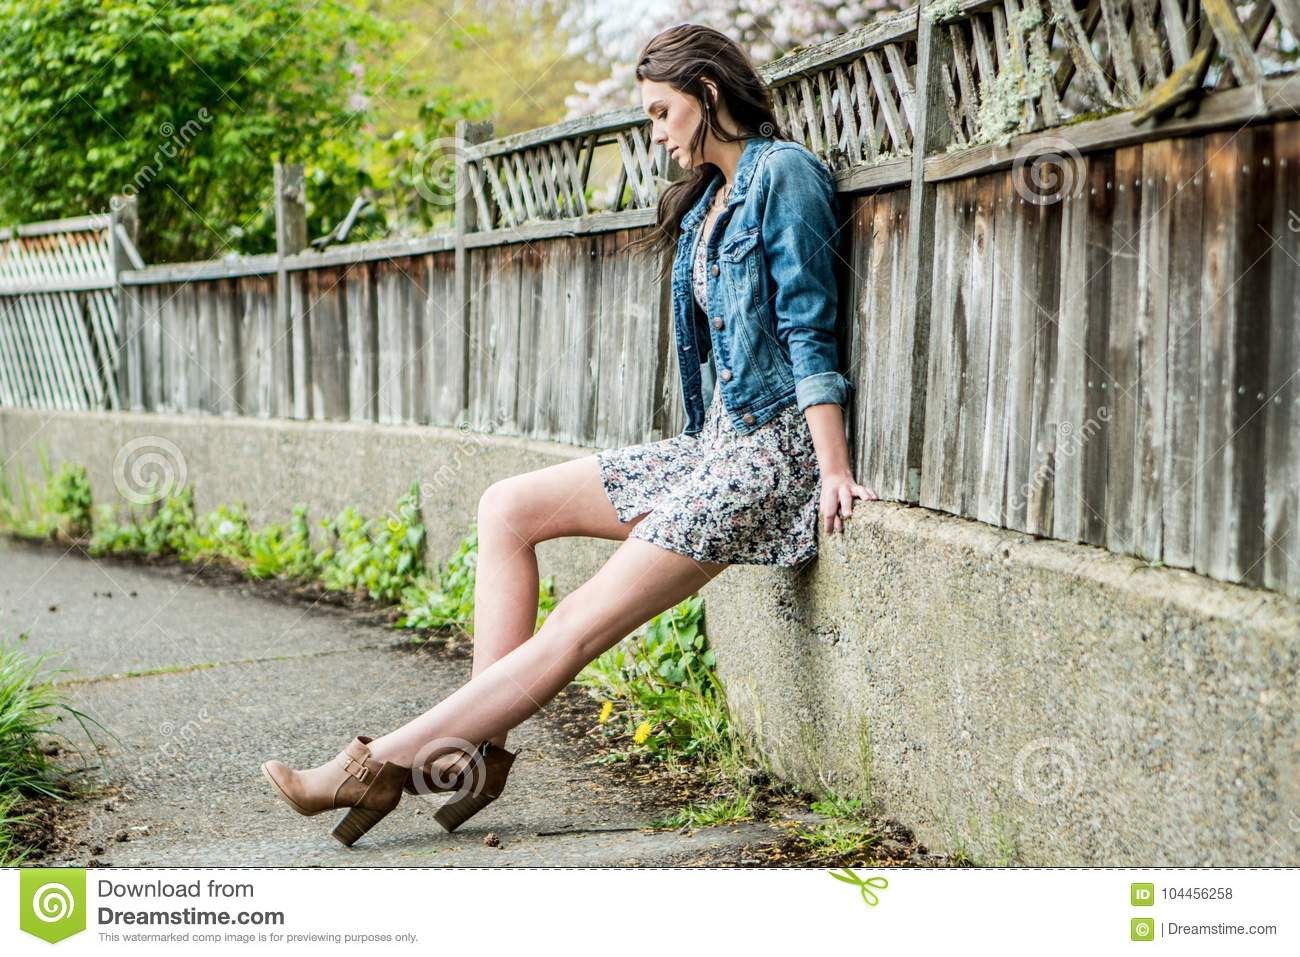 9c0c1ad4449 A young woman sitting along a wooden fence in a urban or suburban setting  wearing a short bohemian style floral dress with a denim jacket.